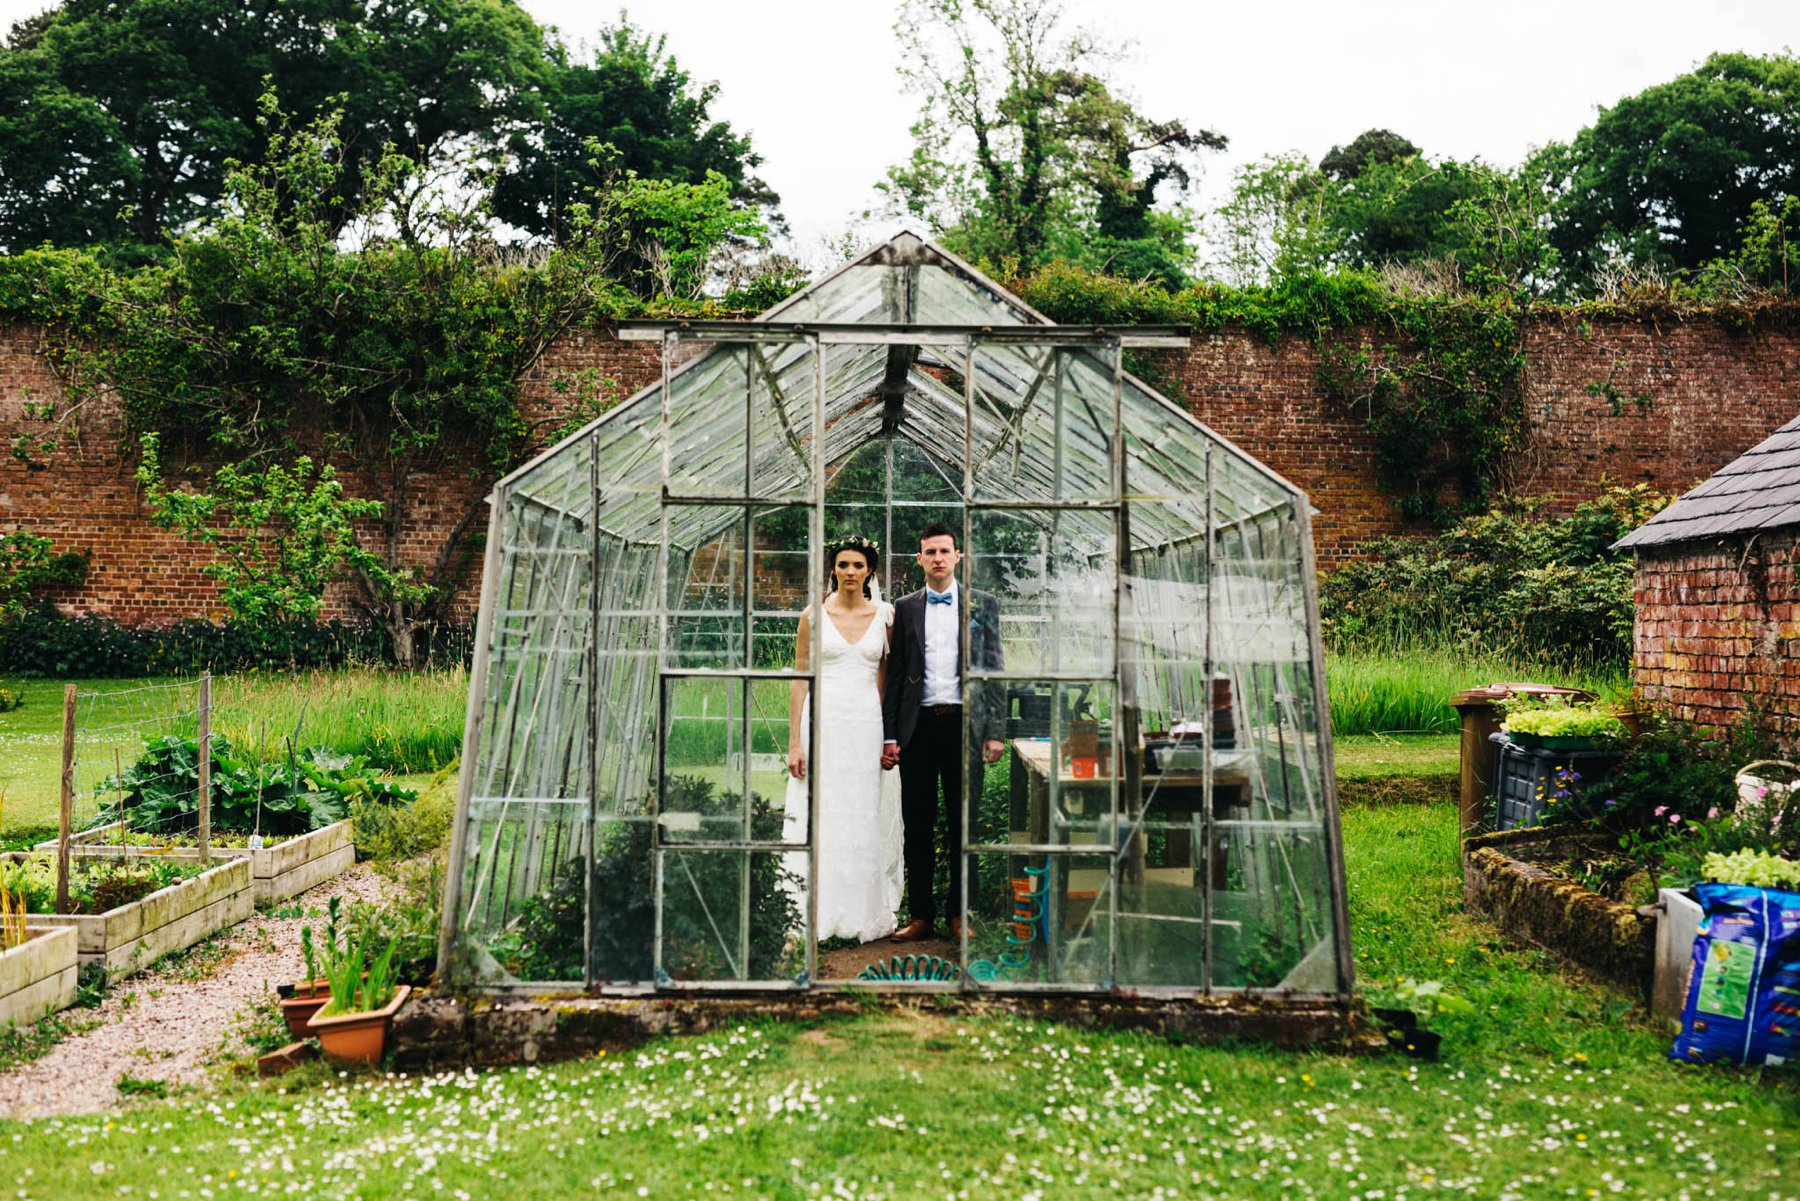 Bride and Groom pose for their wedding portrait in a greenhouse on the grounds of Ballyscullion, Northern Ireland